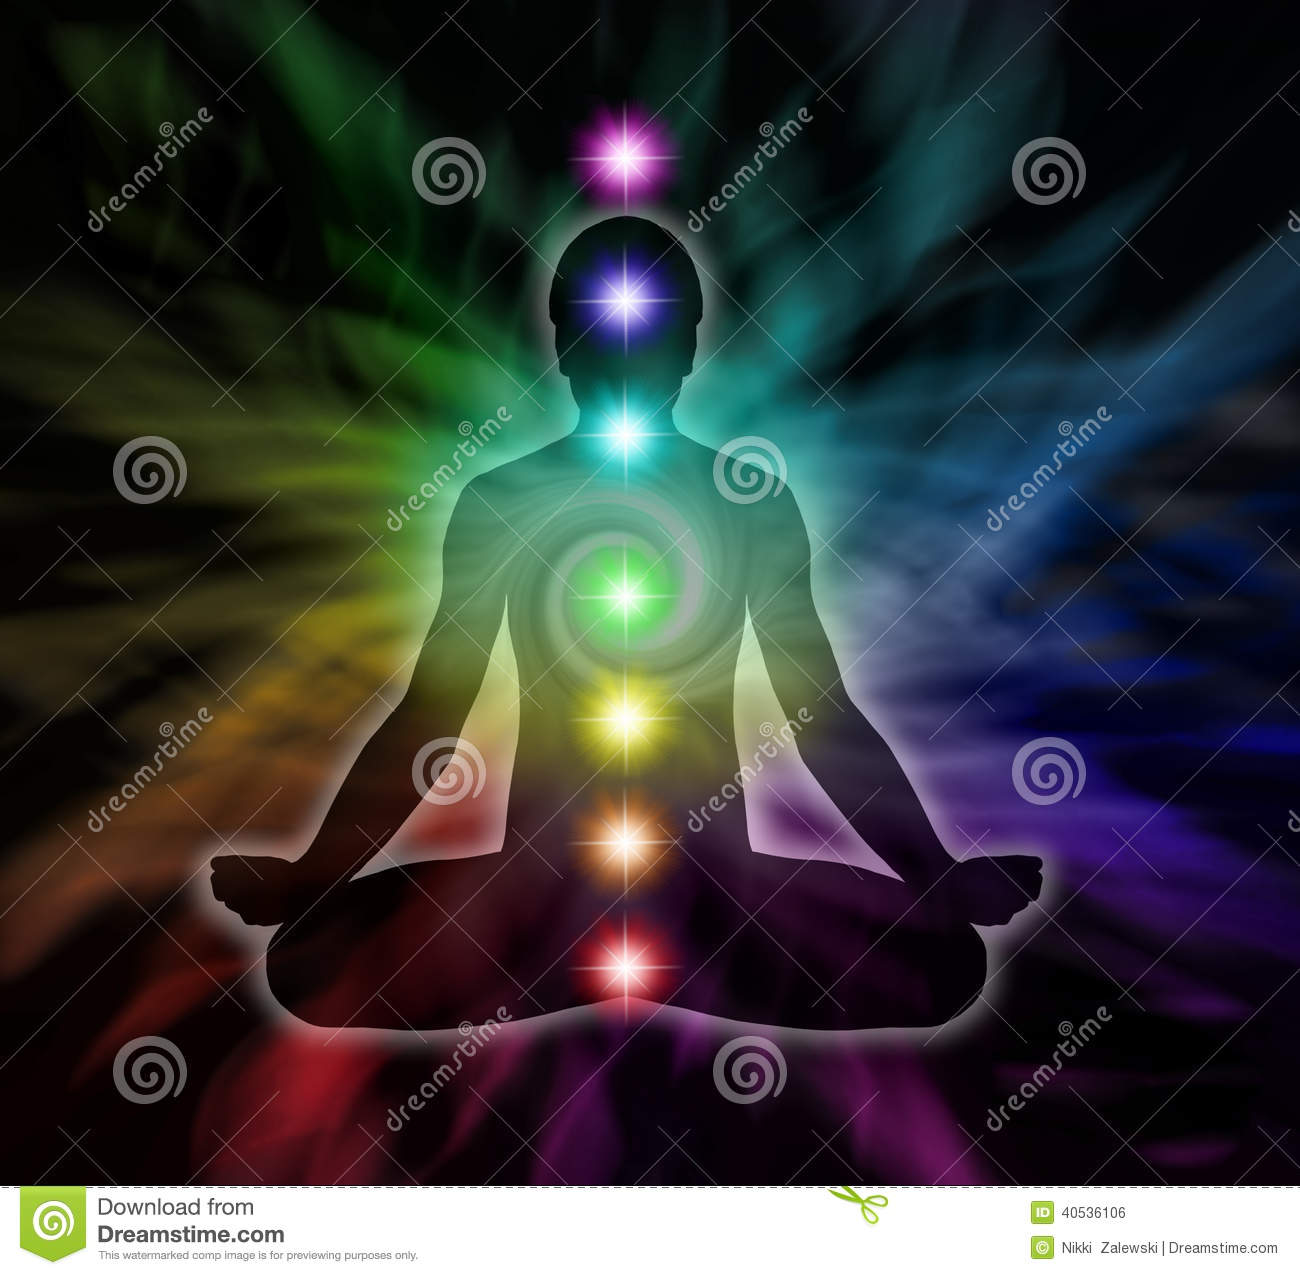 hight resolution of silhouette diagram of a man in lotus meditation position with seven chakras on flowing rainbow energy background